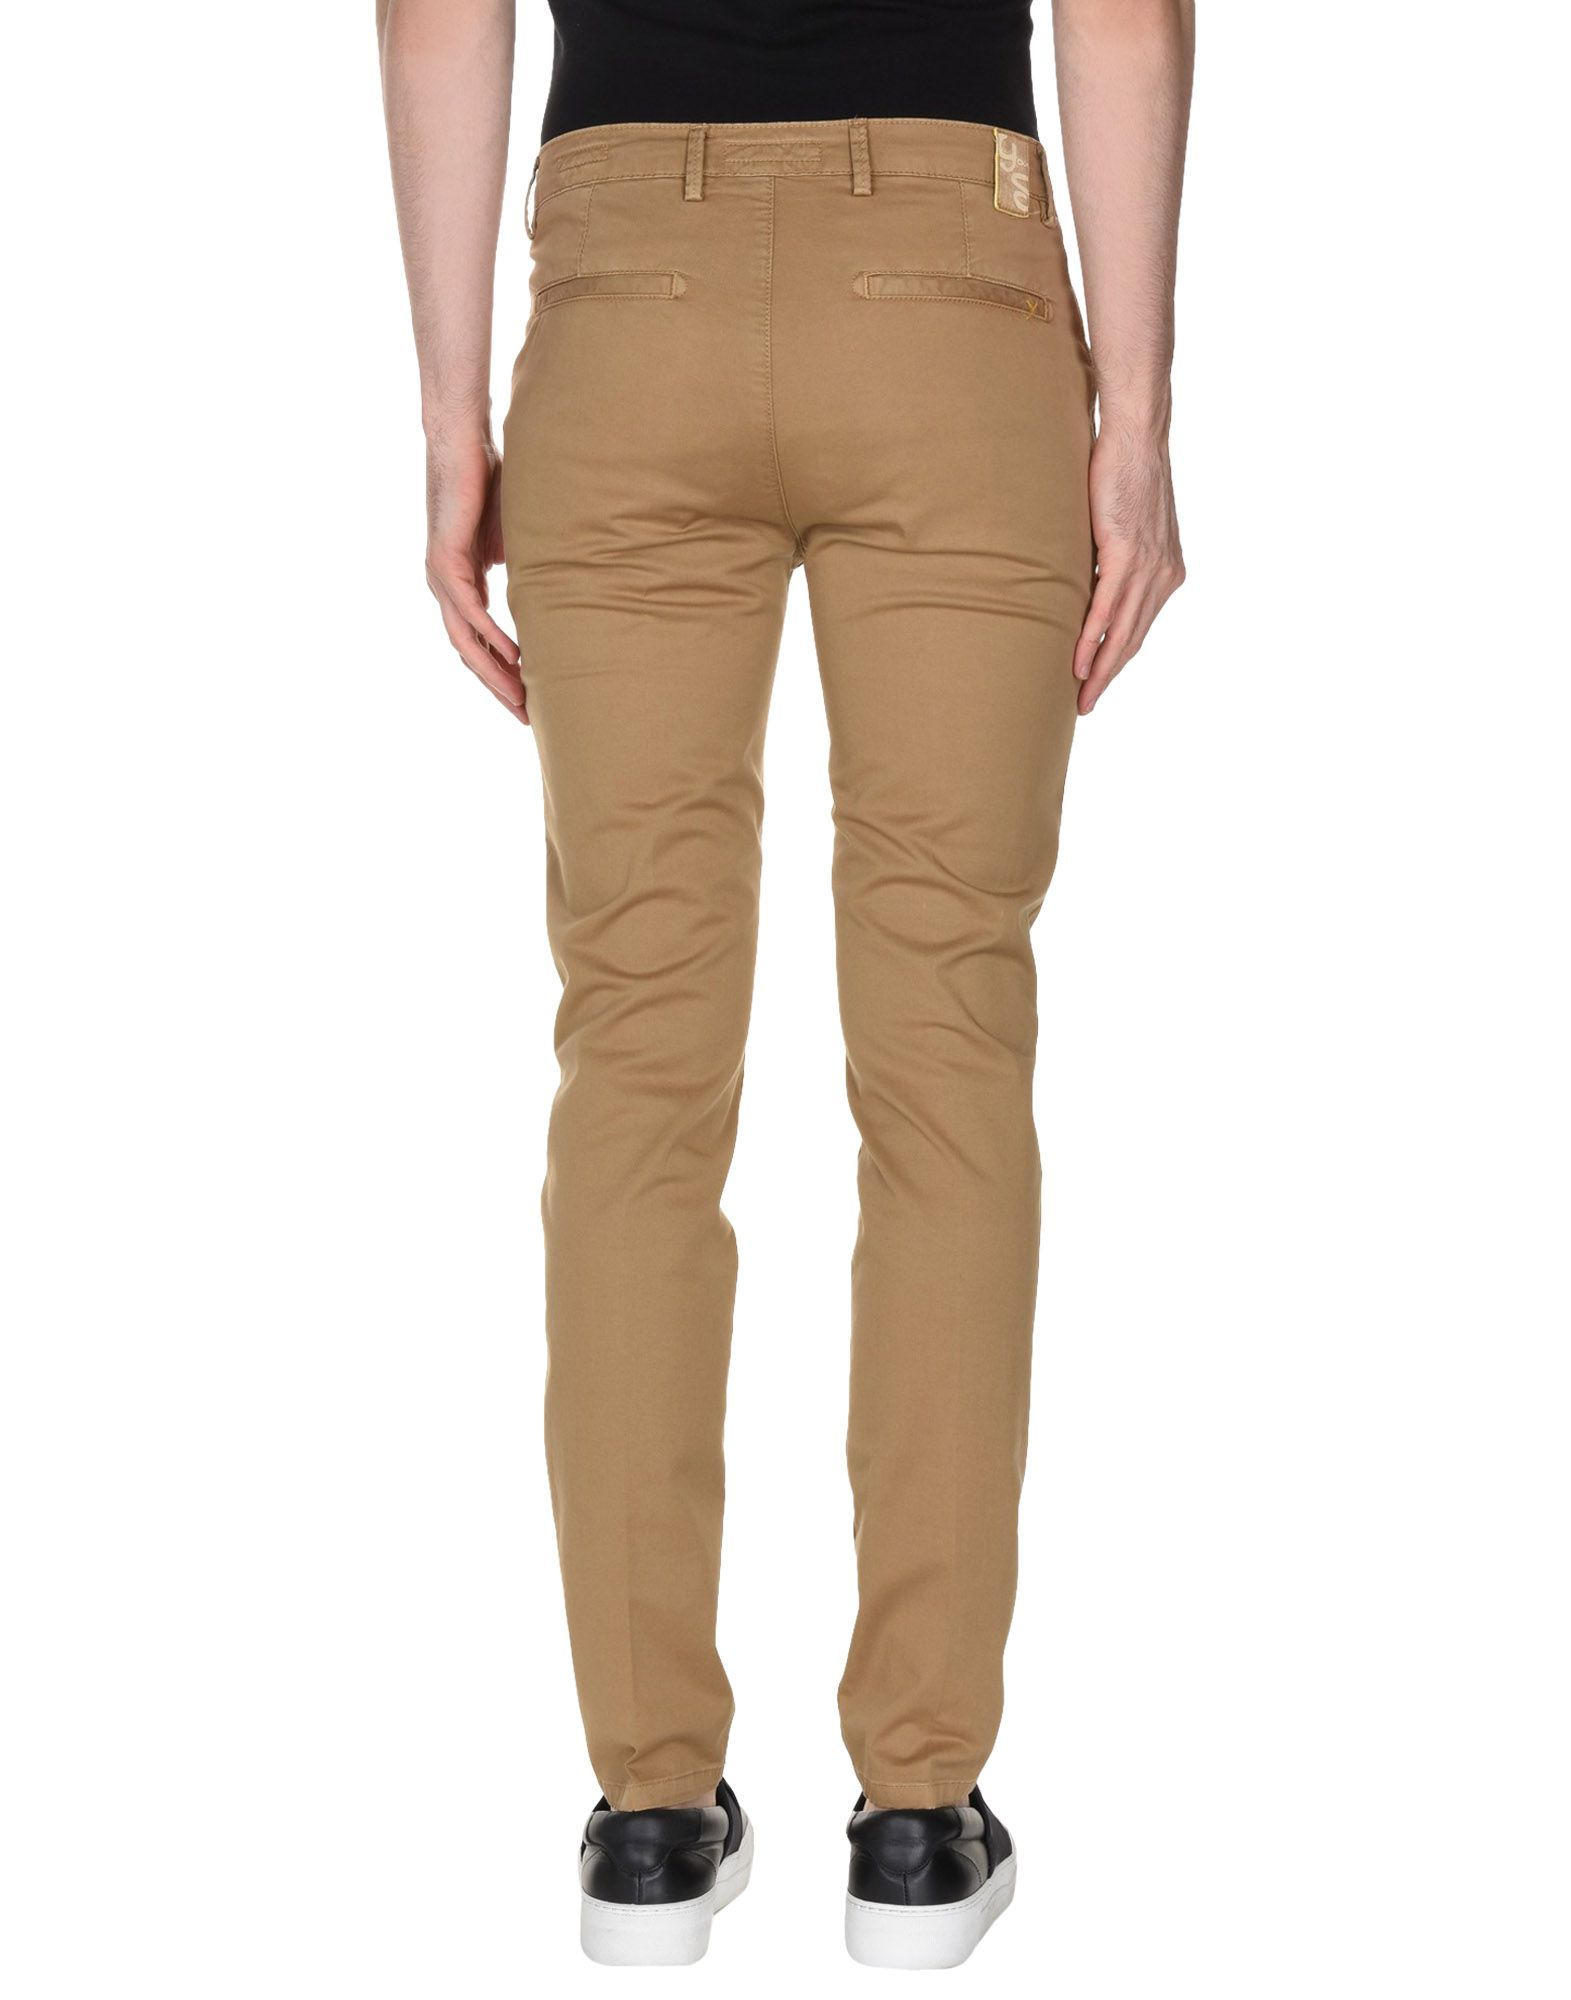 Camel cotton twill mid-rise trousers